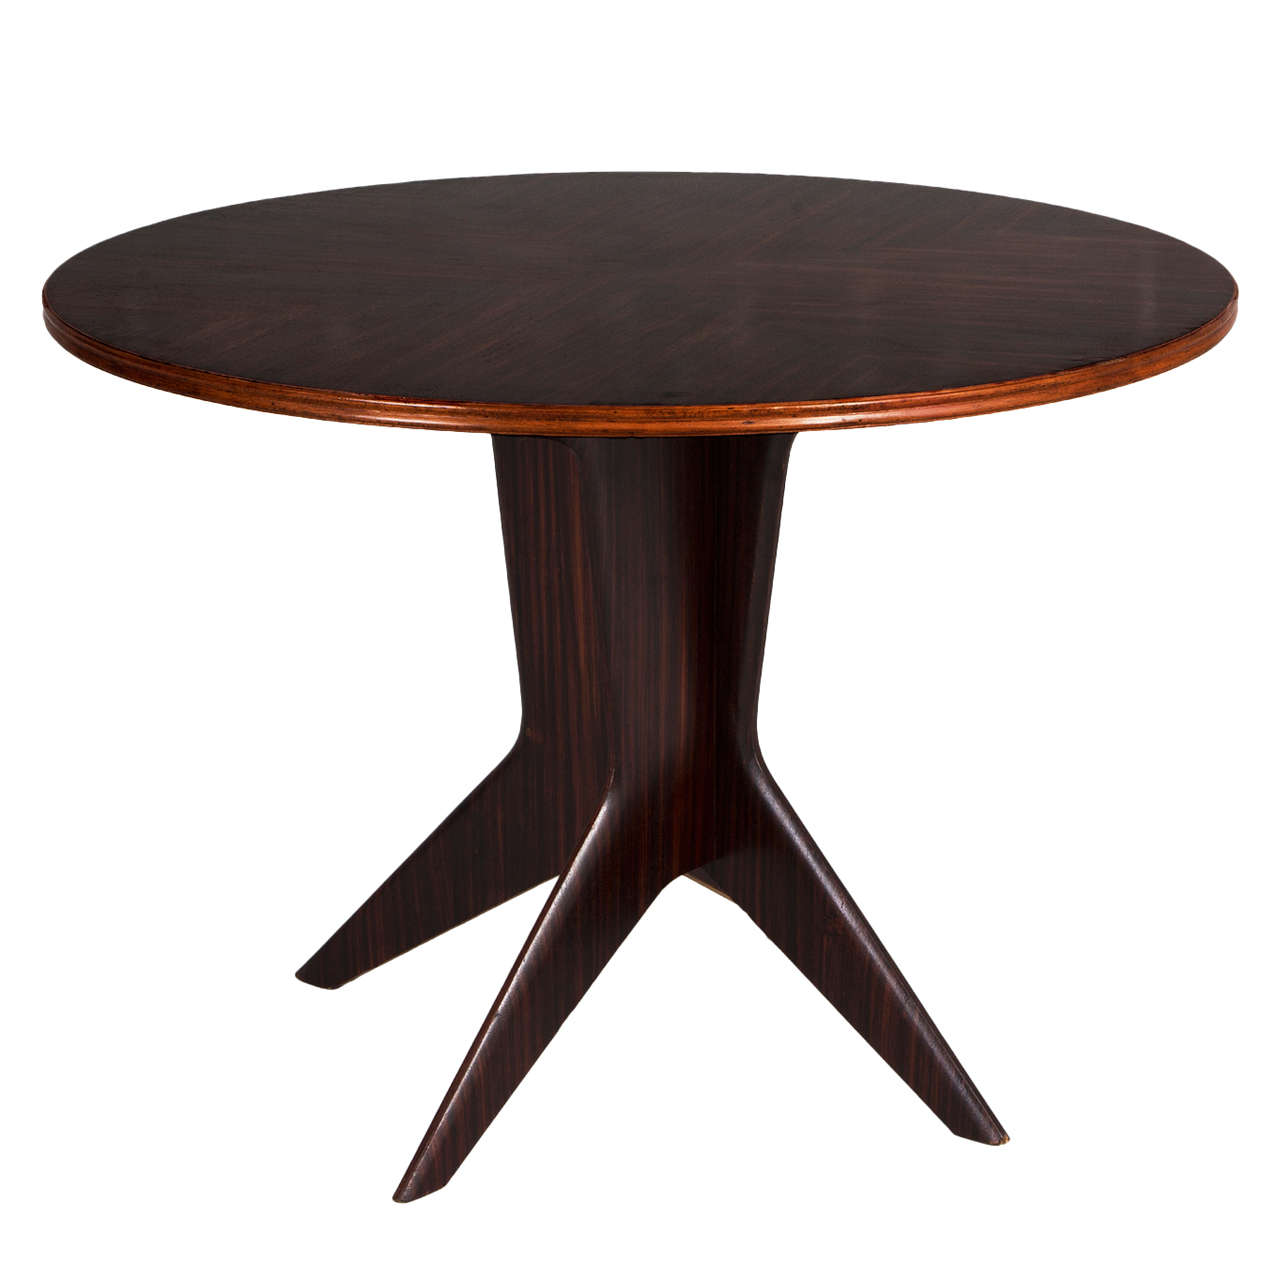 Elegant round italian dining table at 1stdibs for Fancy round dining table